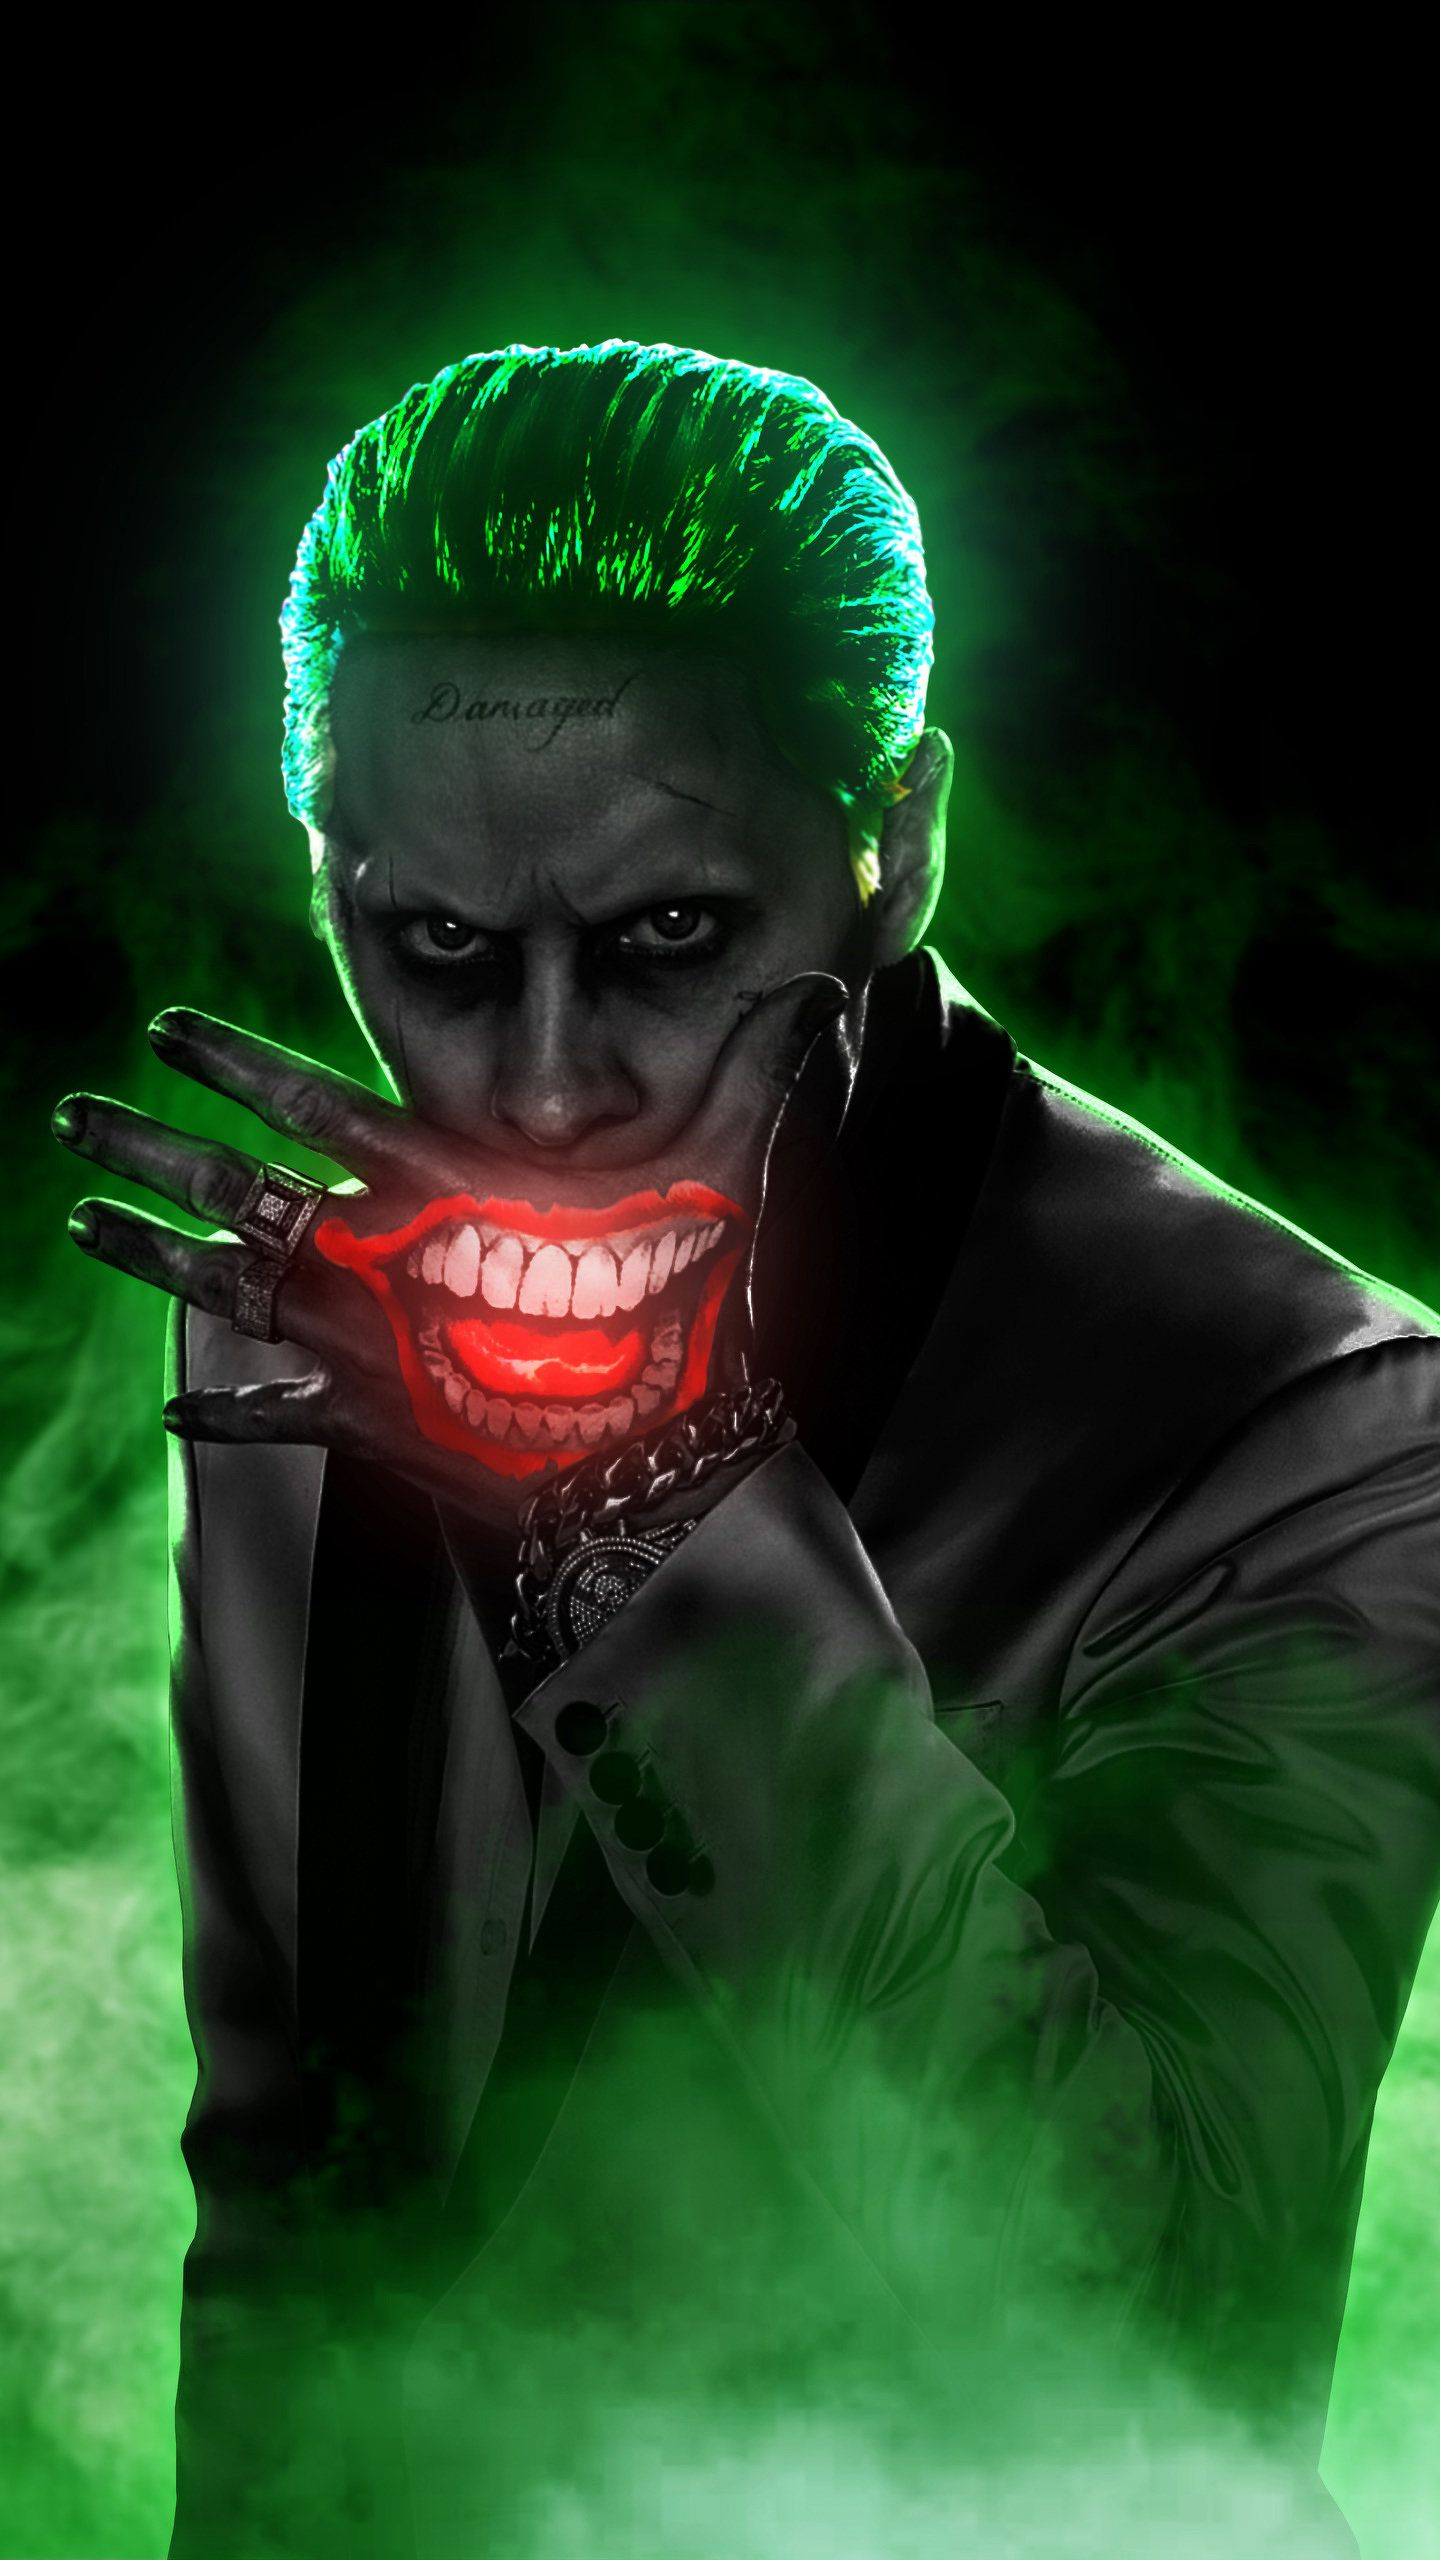 Jared Leto Joker 4K HD Wallpaper (1440x2560) (With images